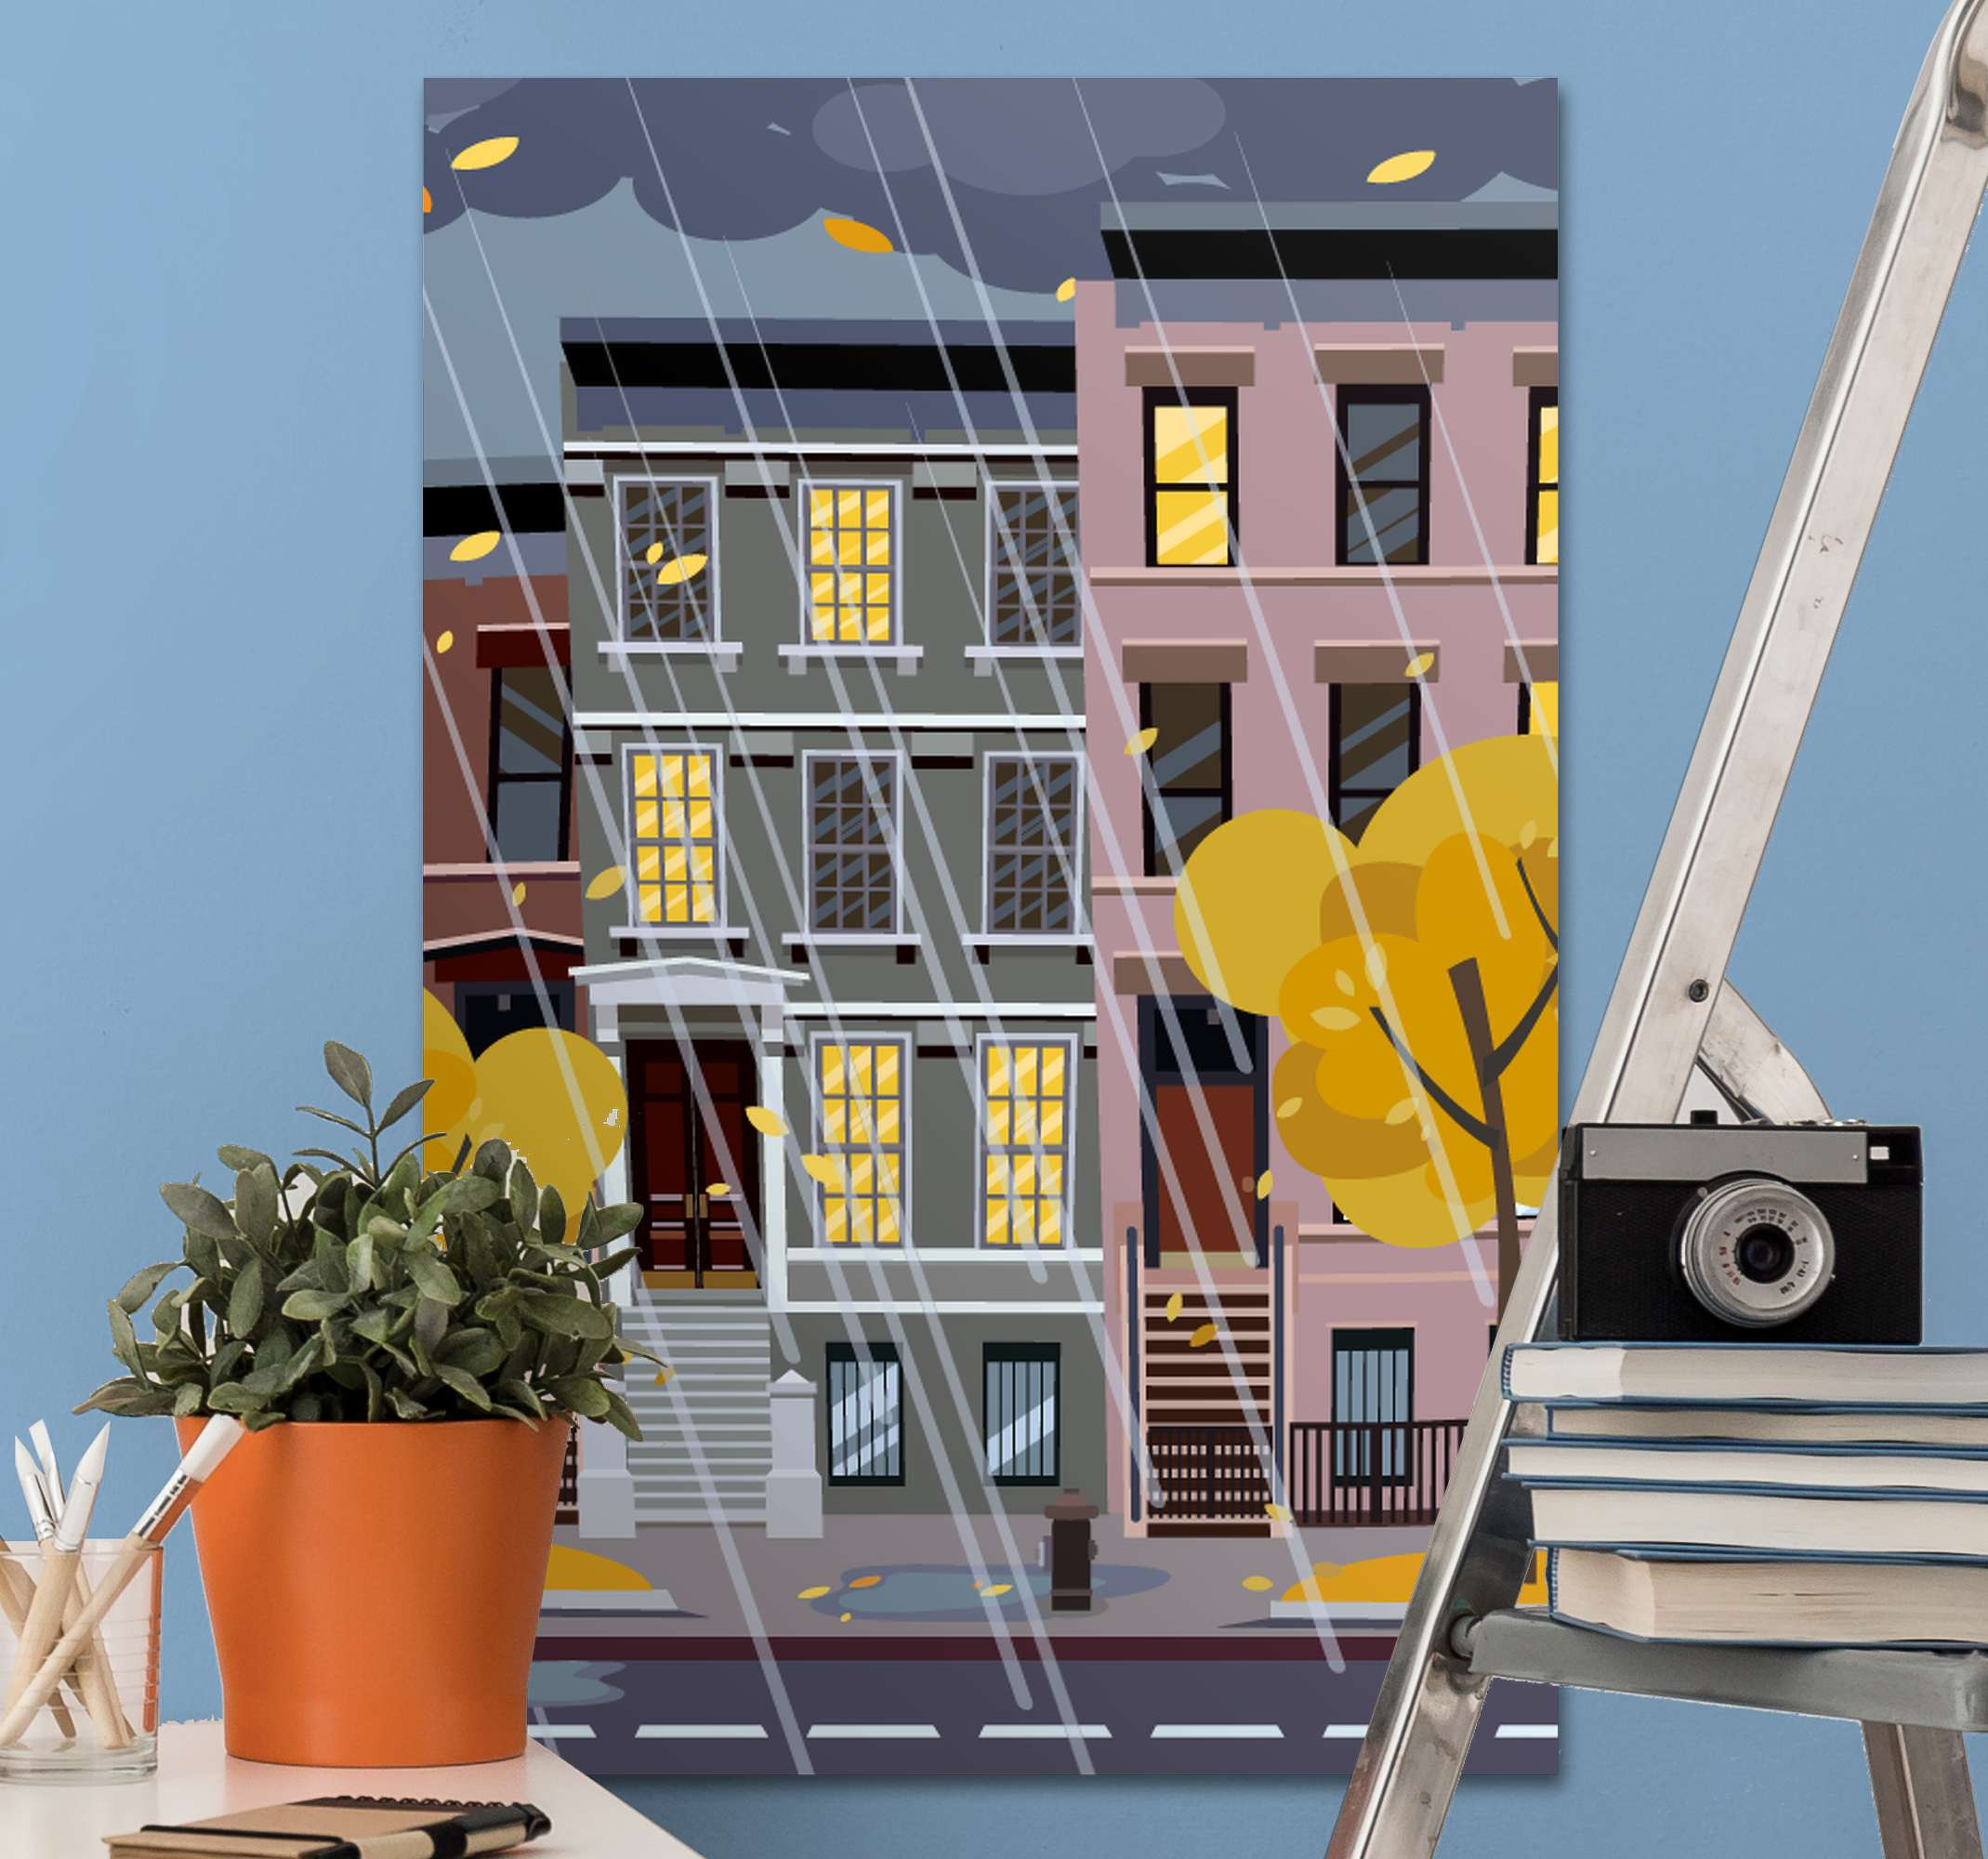 TenStickers. New York Rain canvas art. A wonderful city canvas wall art featuring a rainy scene in New York City! Get 10% off your first order when you sign up.